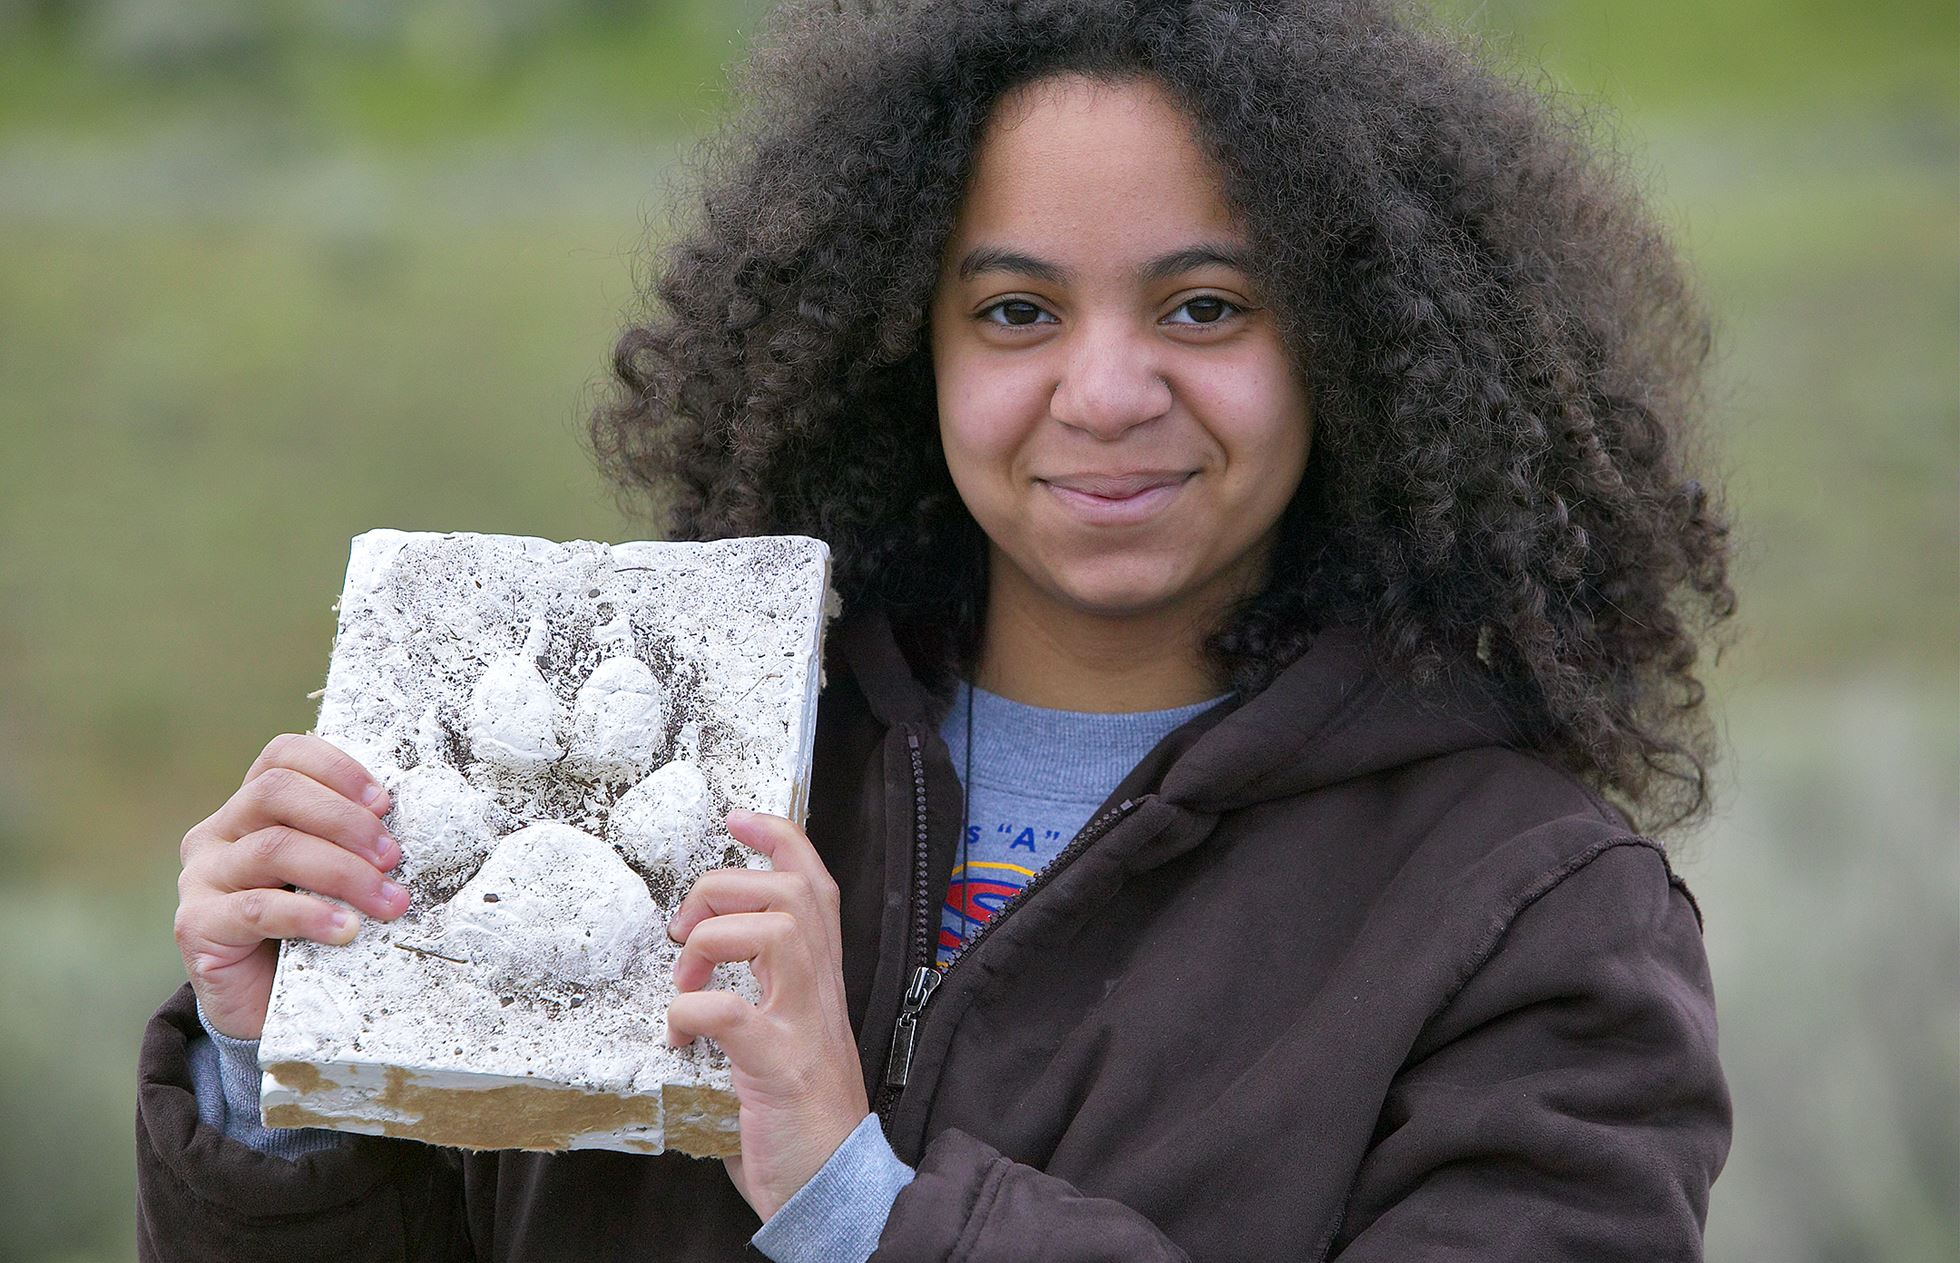 Young wildlife watcher holding up plaster cast of wolf footprint as part of education programme about wolf reintroduction  (wolf reintroduction in 1995 has boosted eco-tourism), Yellowstone National Park, USA